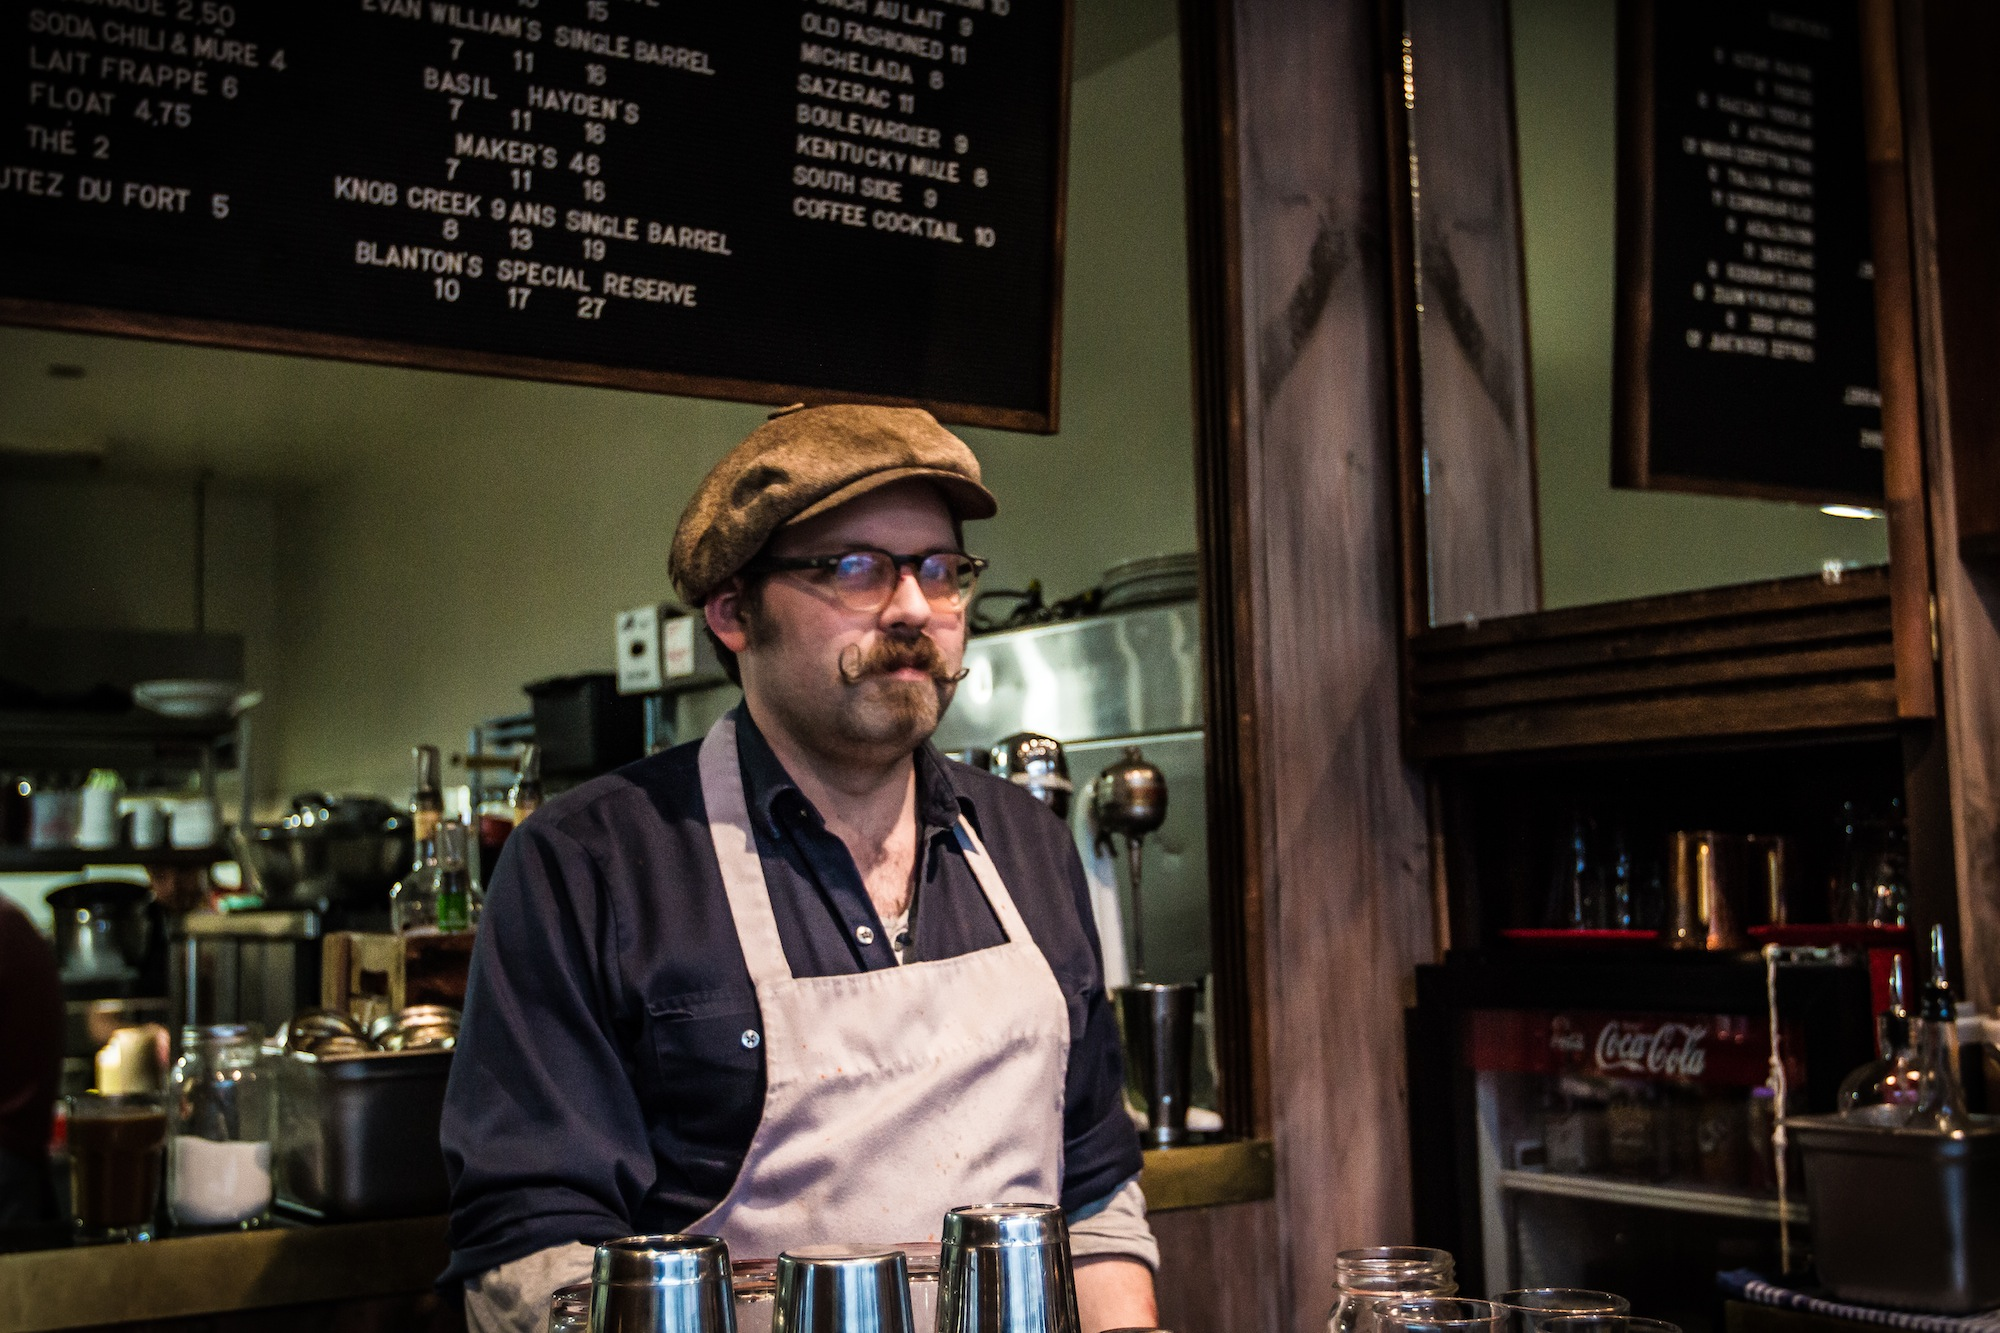 Dinette Triple Crown's Colin Perry